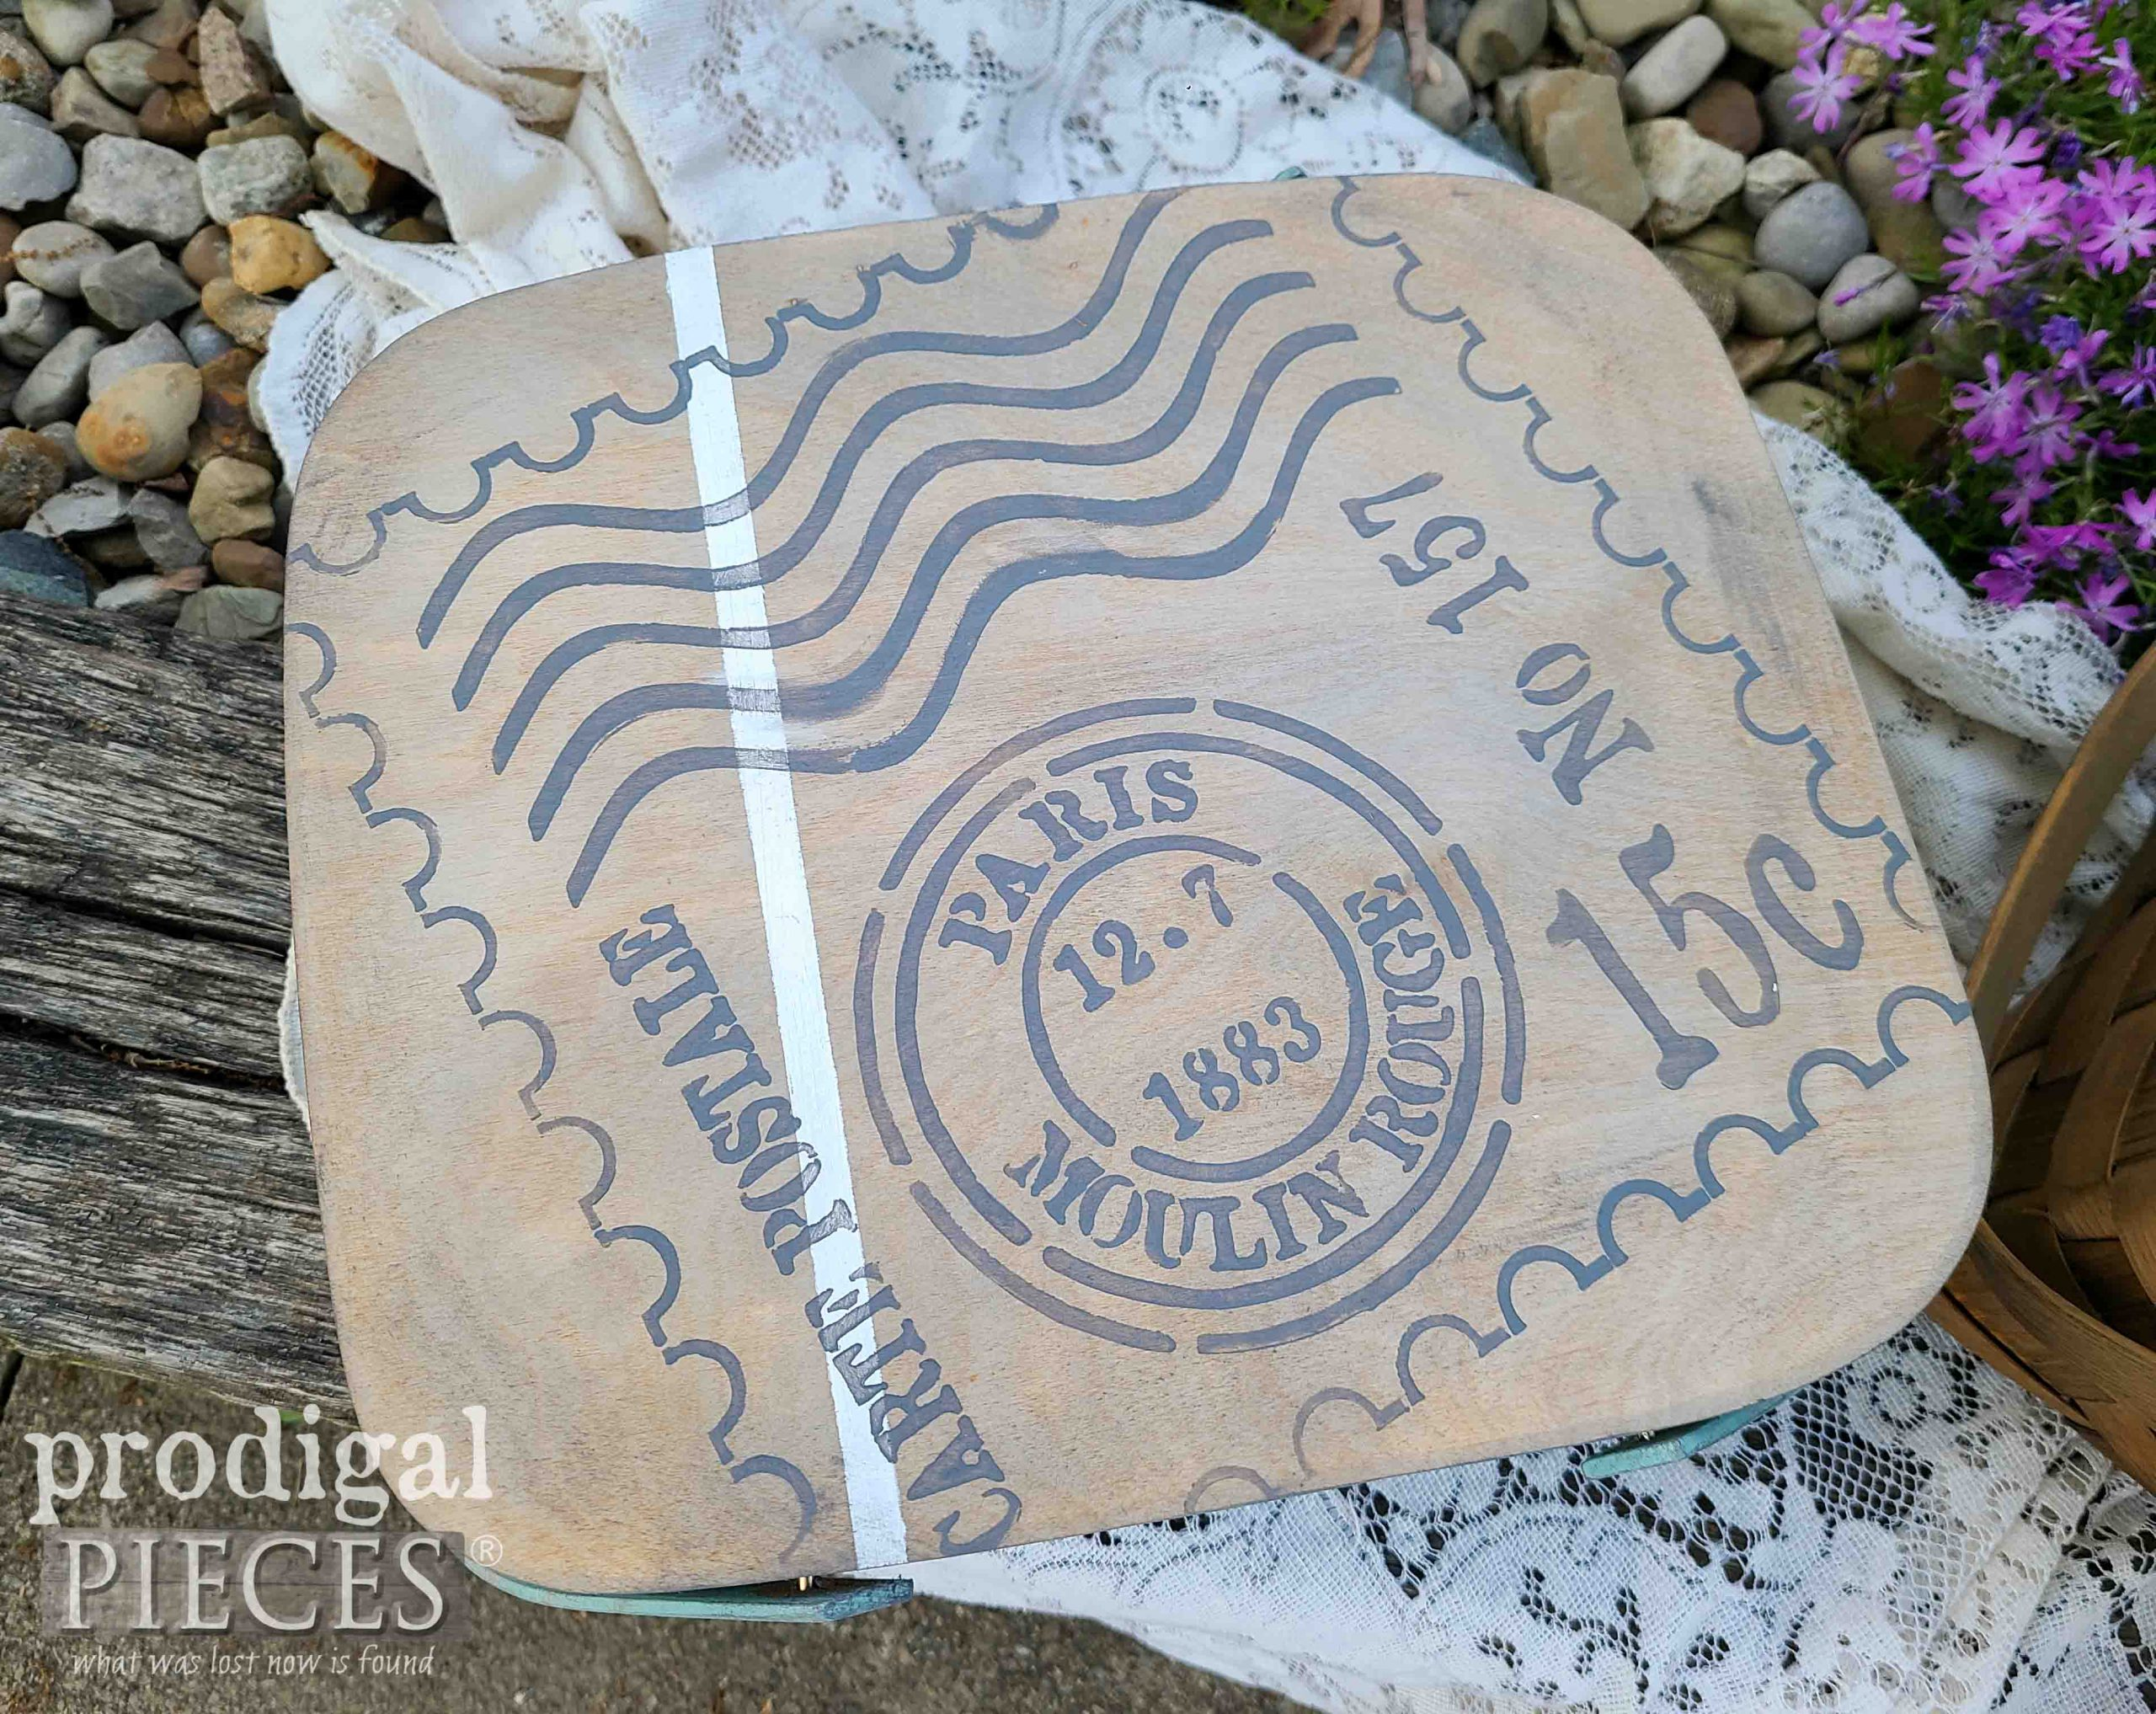 Postage Stamp Stencil on Upcycled Picnic Baskets by Prodigal Pieces | prodigalpieces.com #prodigalpieces #farmhouse #diy #home